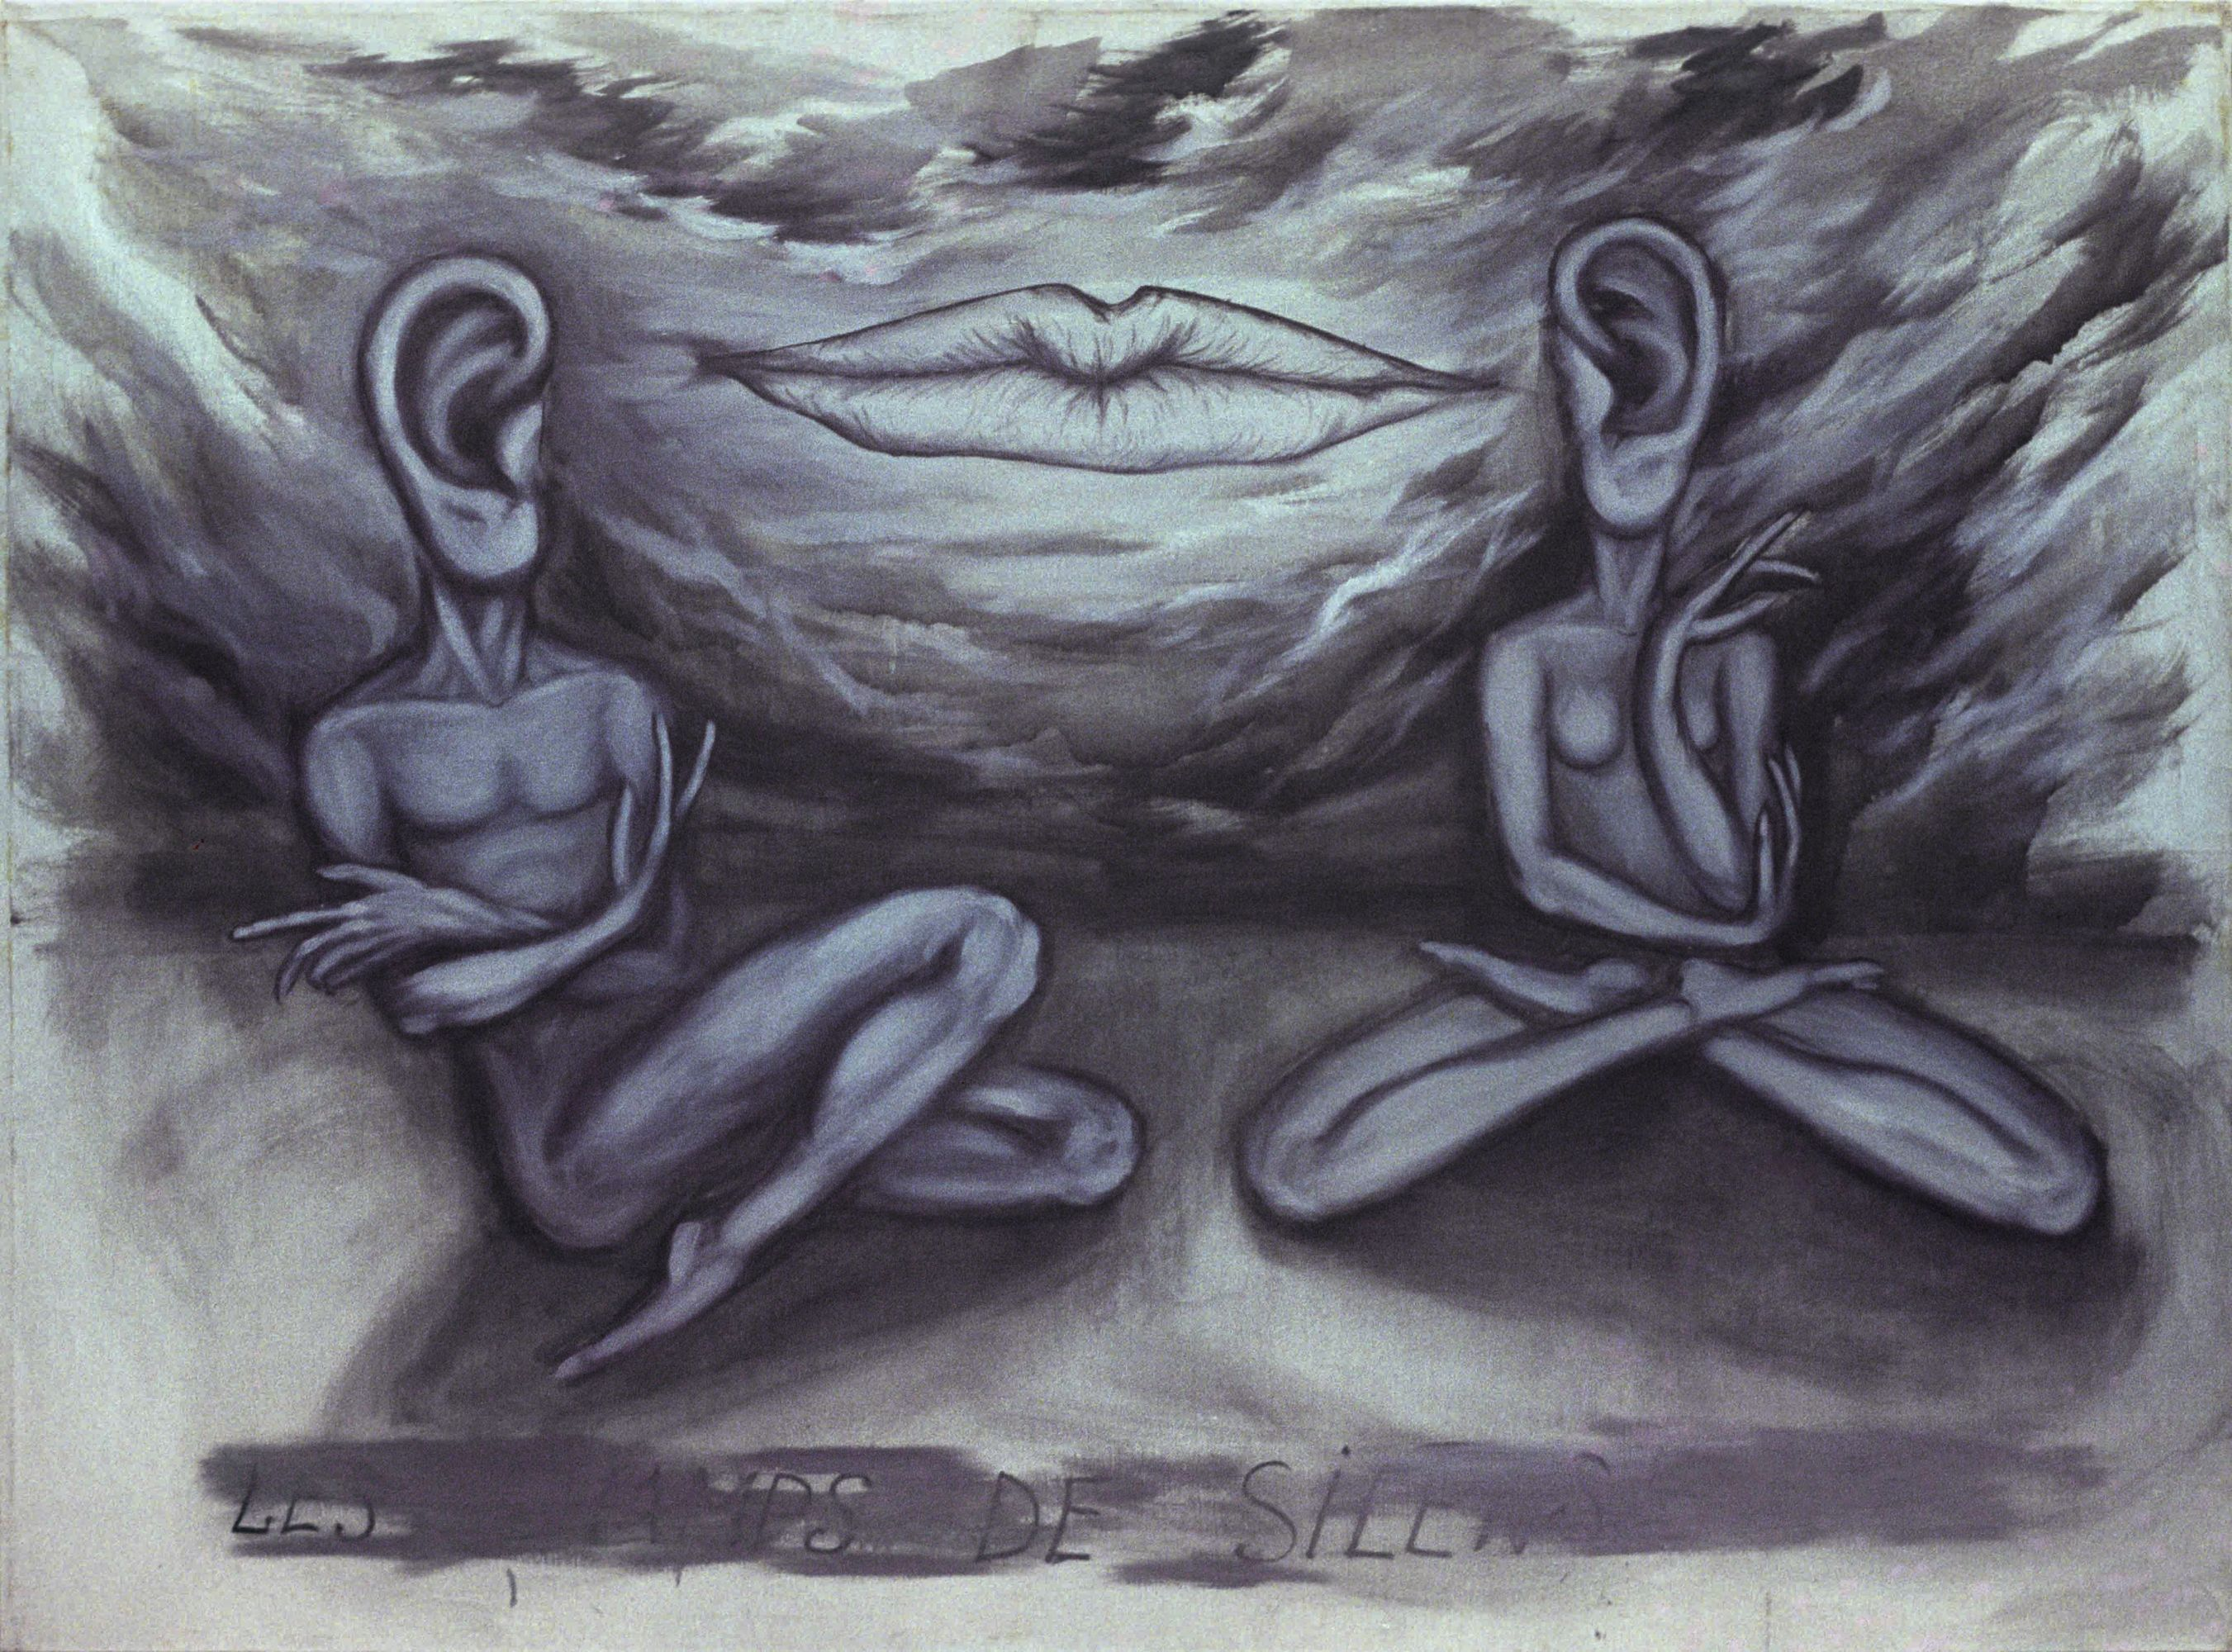 FIELDS OF SILENCE, 1991, oil on canvas, 150 x 200 cm.